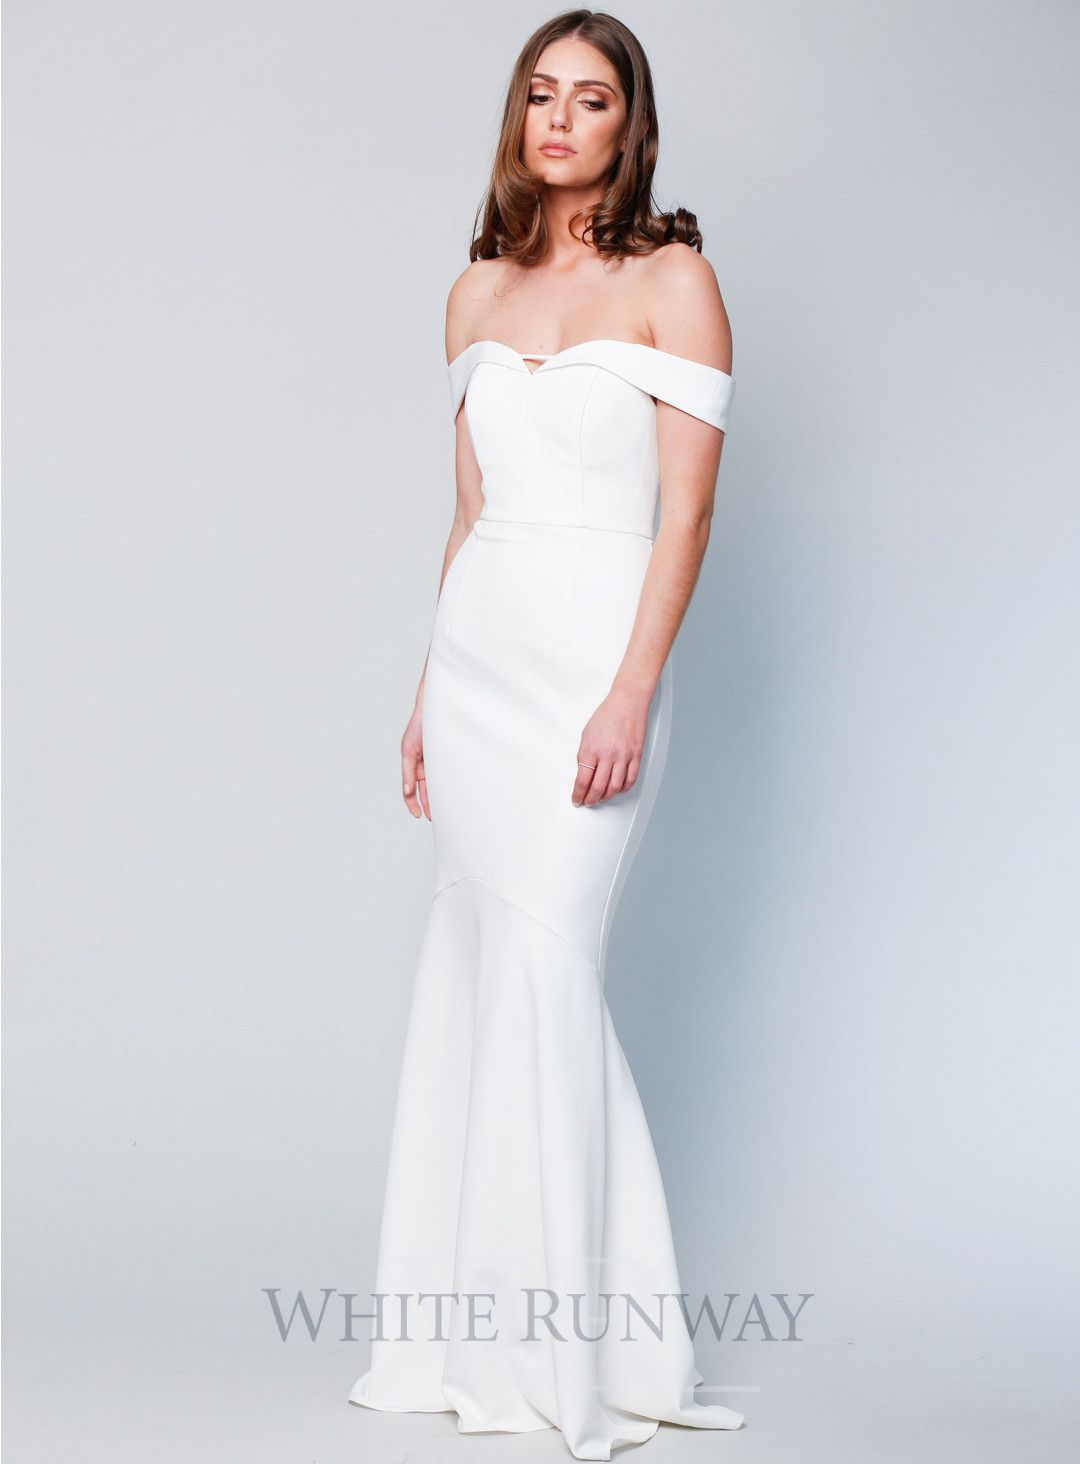 d7272520915 Exclusive Rosetta Gown. A gorgeous off-shoulder dress by Australian brand  Love Honor. The Rosetta Gown is crafted from a mid-weight stretch Crepe  fabric ...